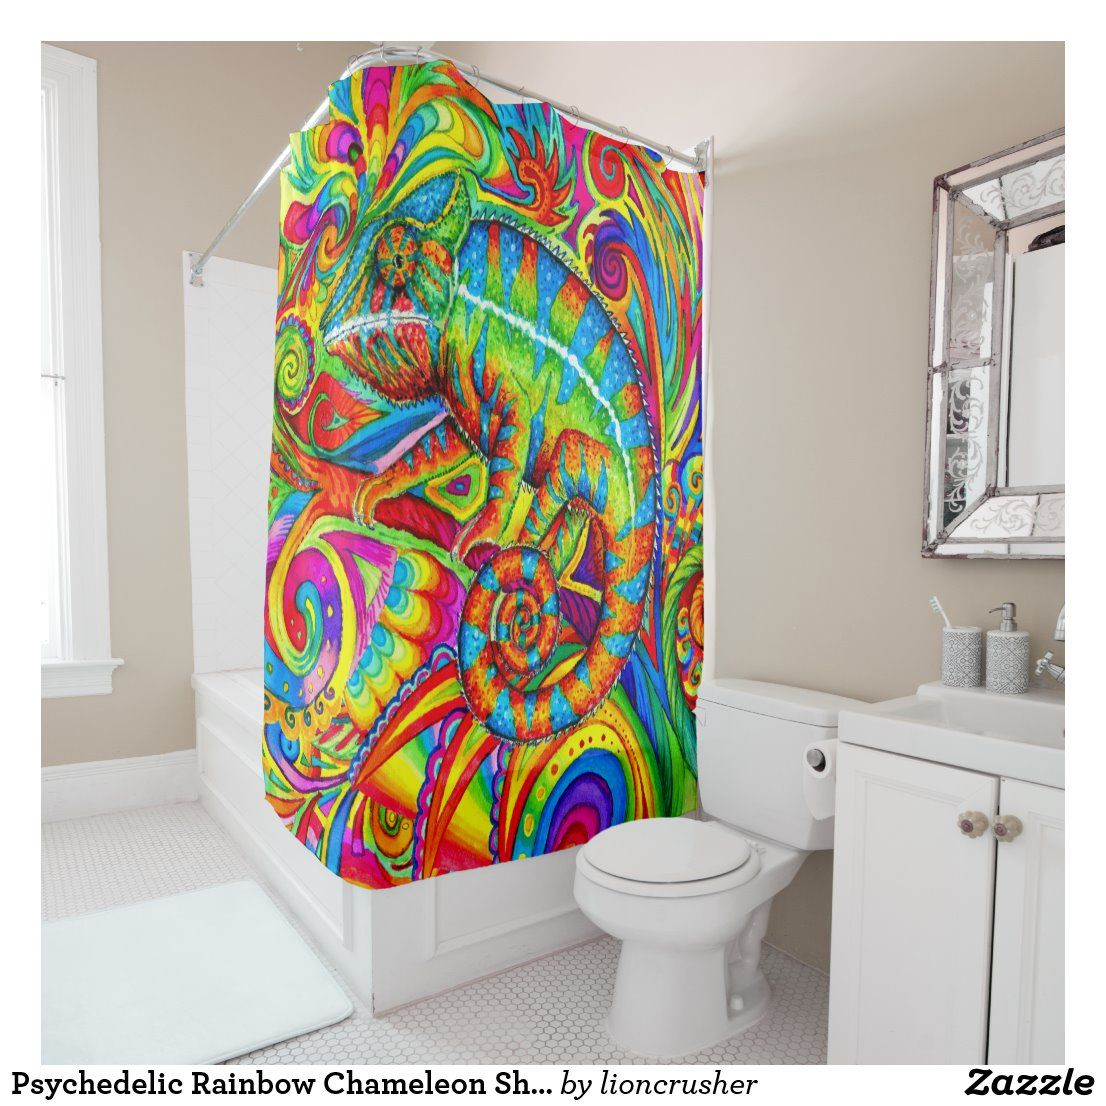 Psychedelic Rainbow Chameleon Shower Curtain Zazzle Com